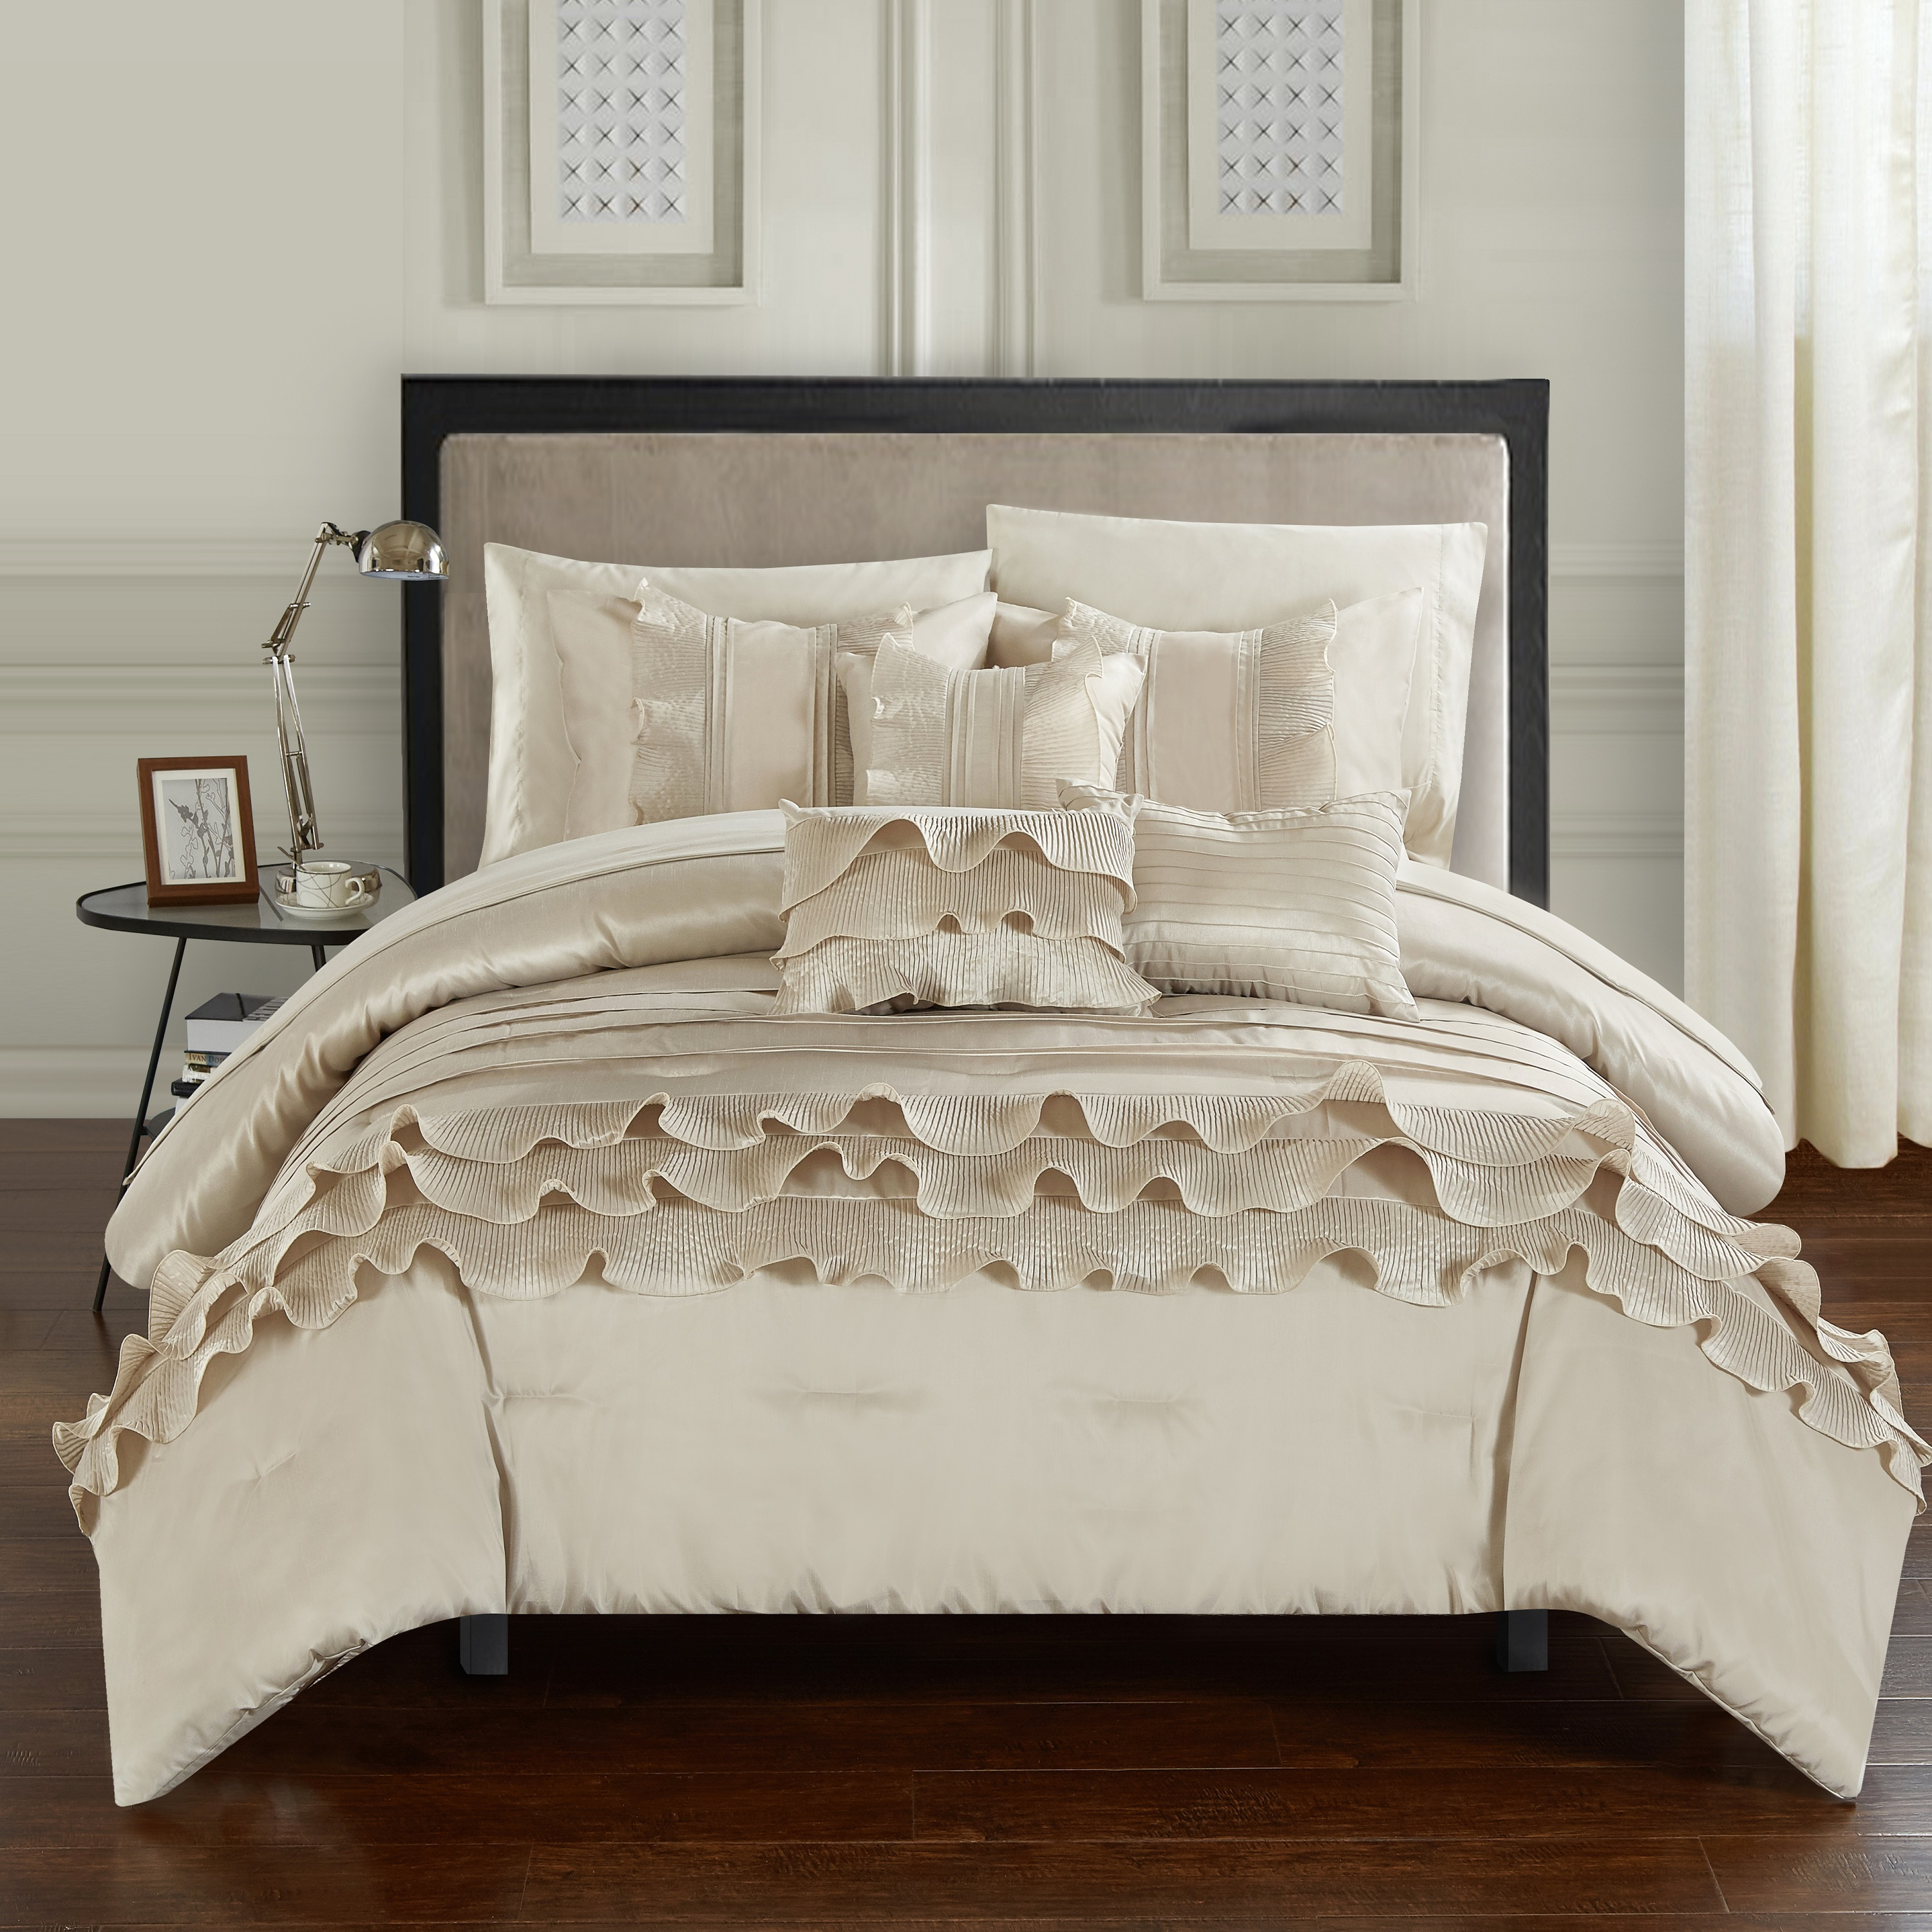 Chic Home 10-Piece Samson Rouching Pleated Ruffles Complete Bed In a Bag Comforter Set, Sheets set and Decorative pillows included